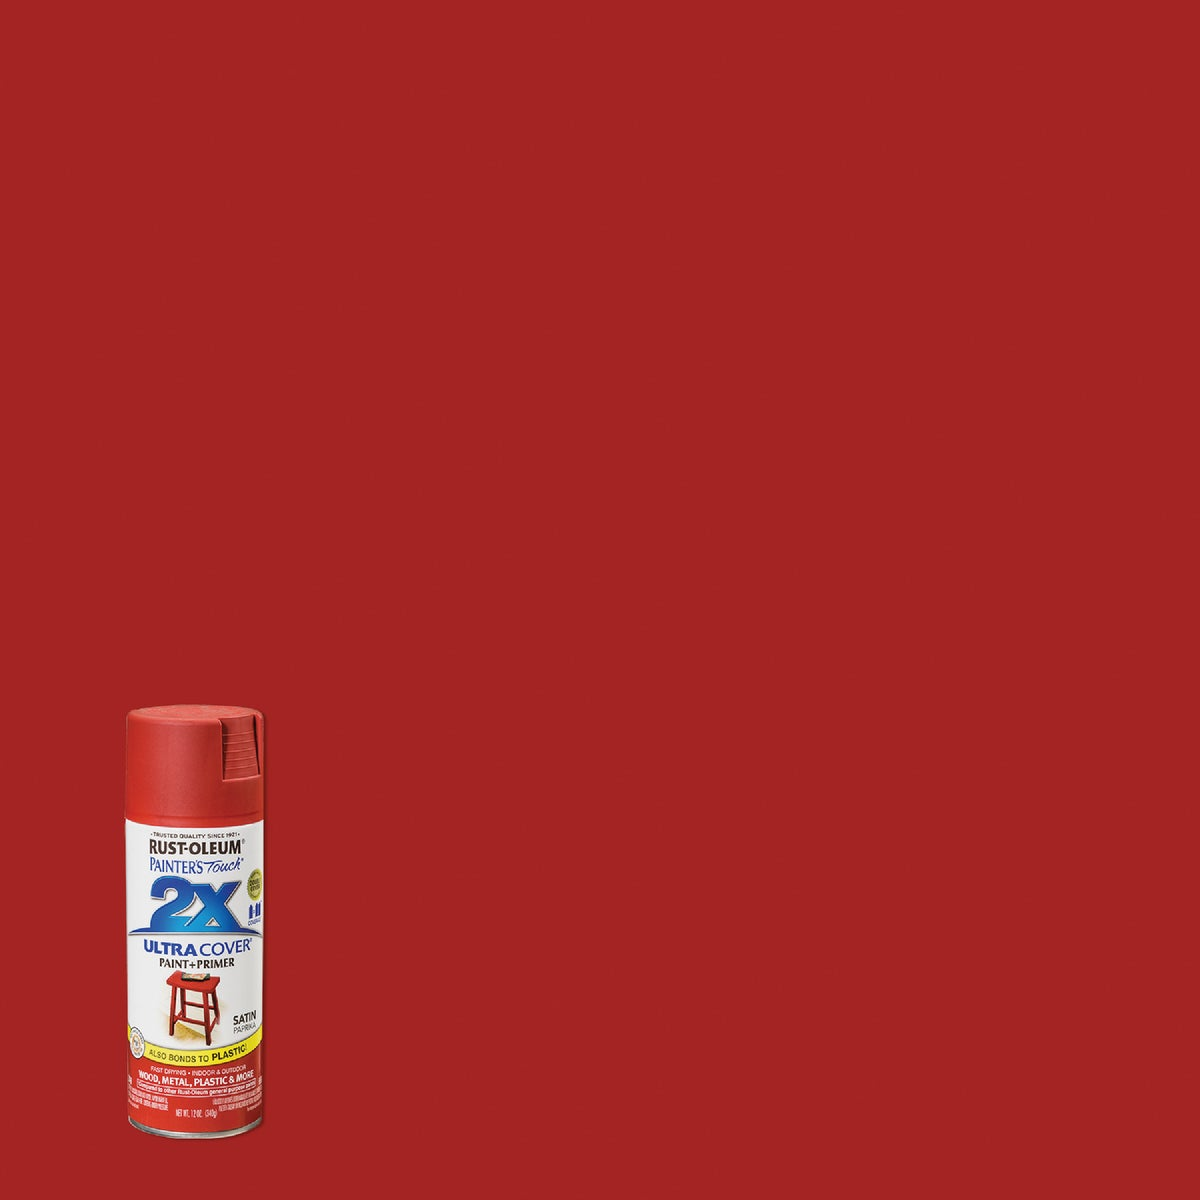 SAT PAPRIKA SPRAY PAINT - 249068 by Rustoleum